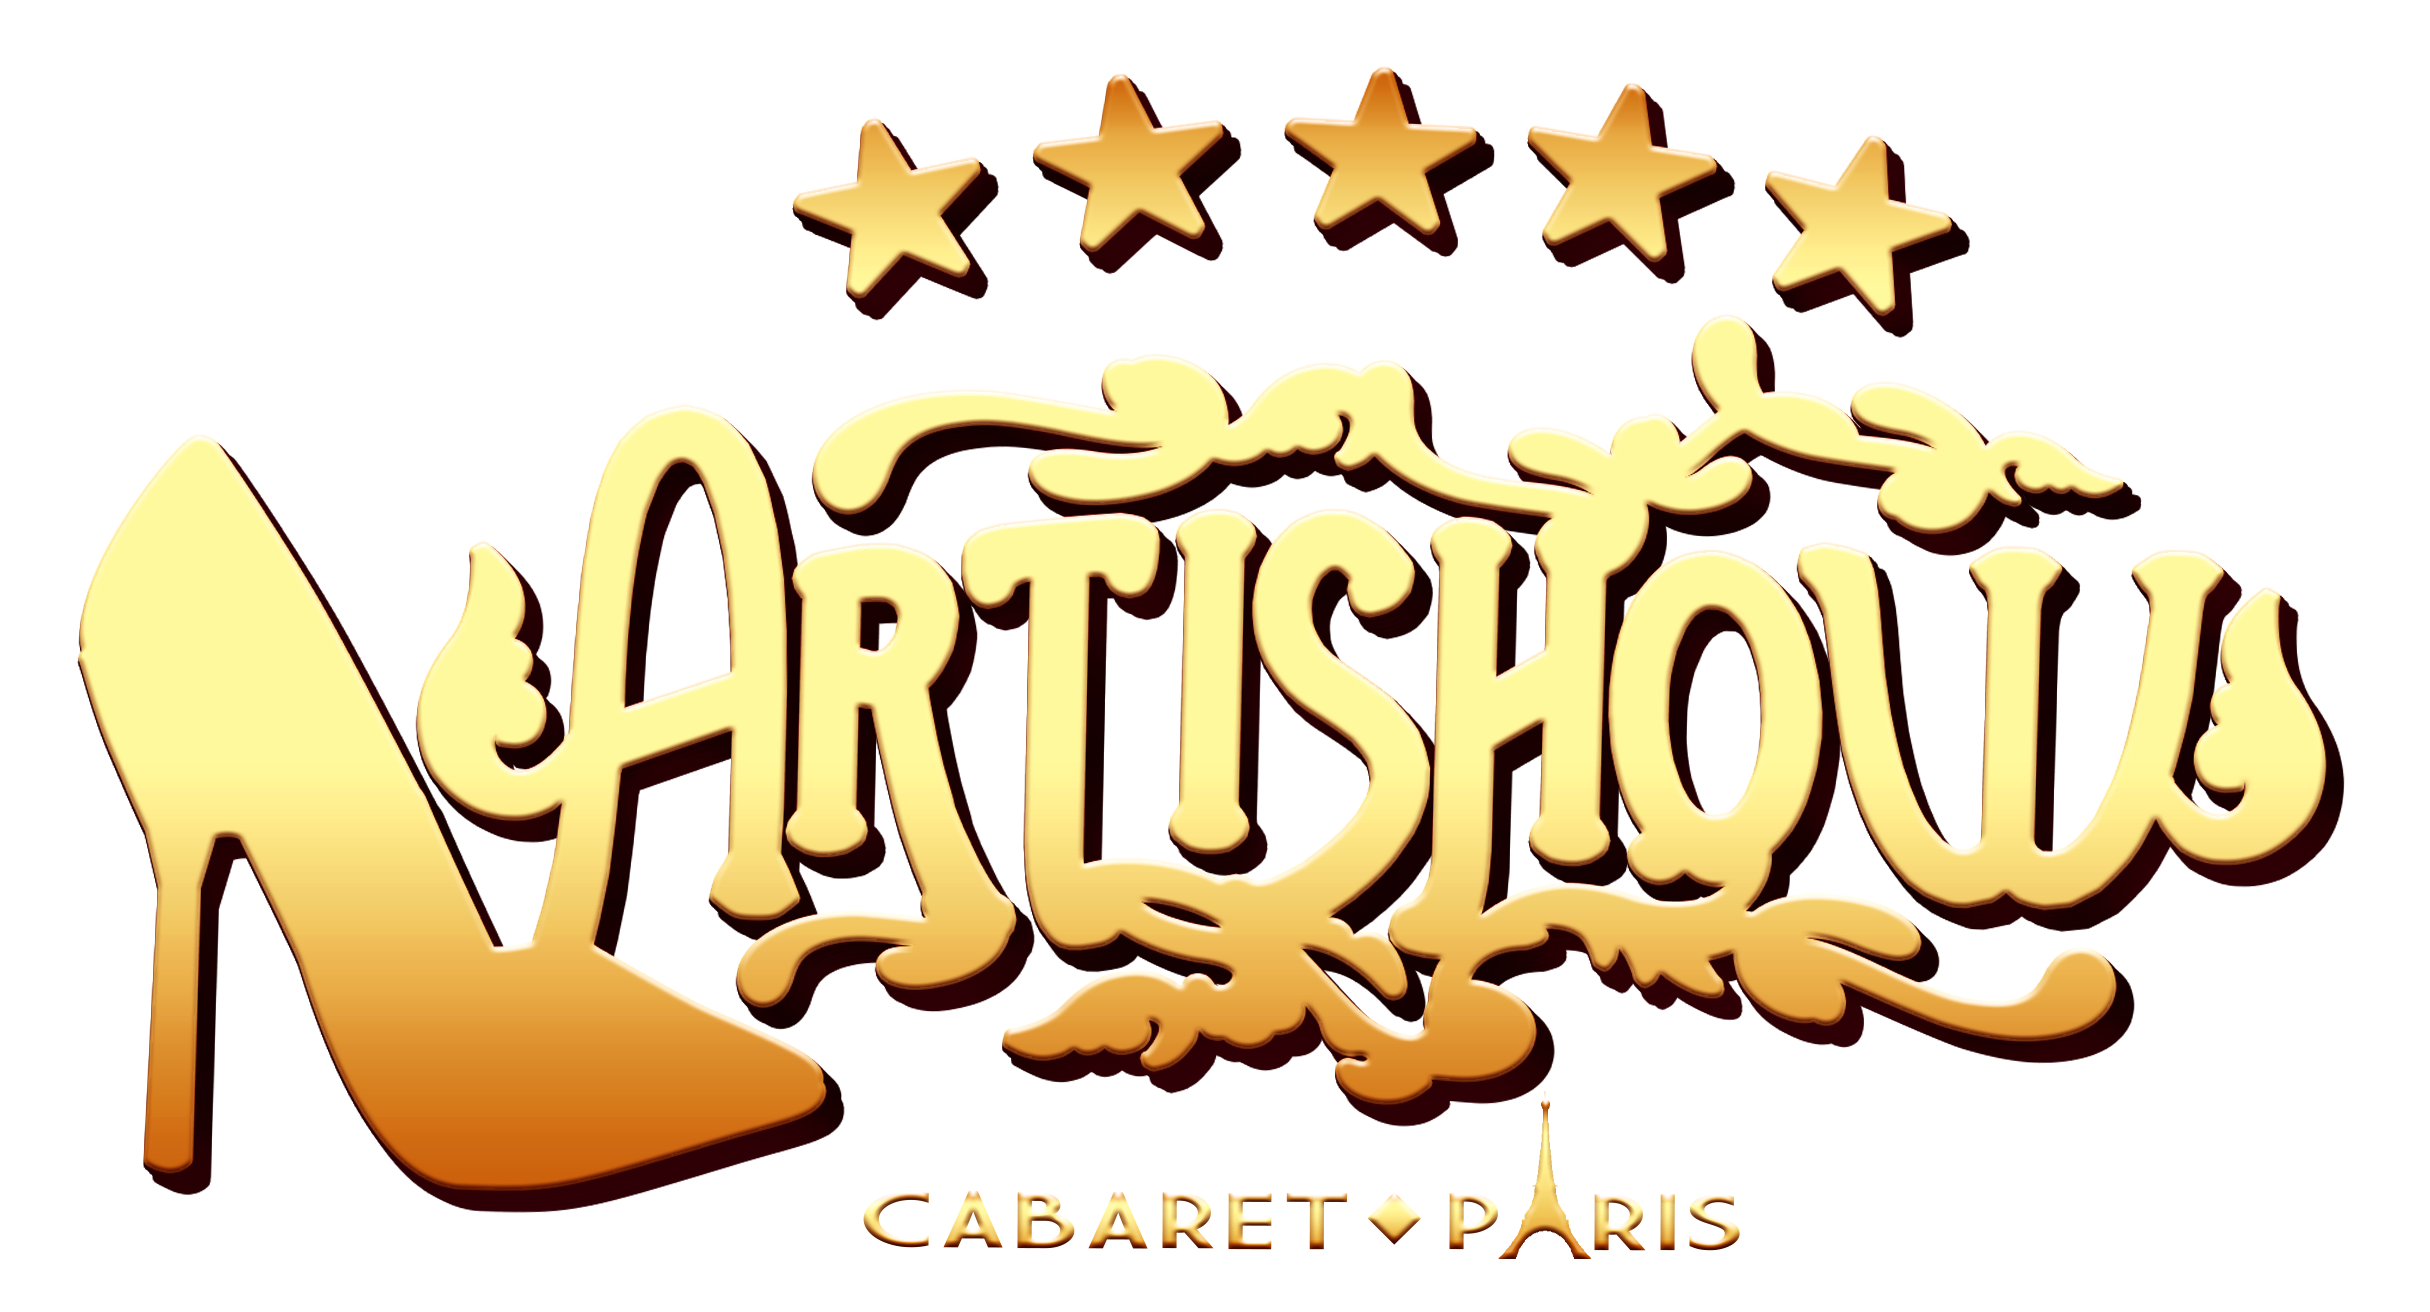 Artishow Cabaret Largeur Google Map